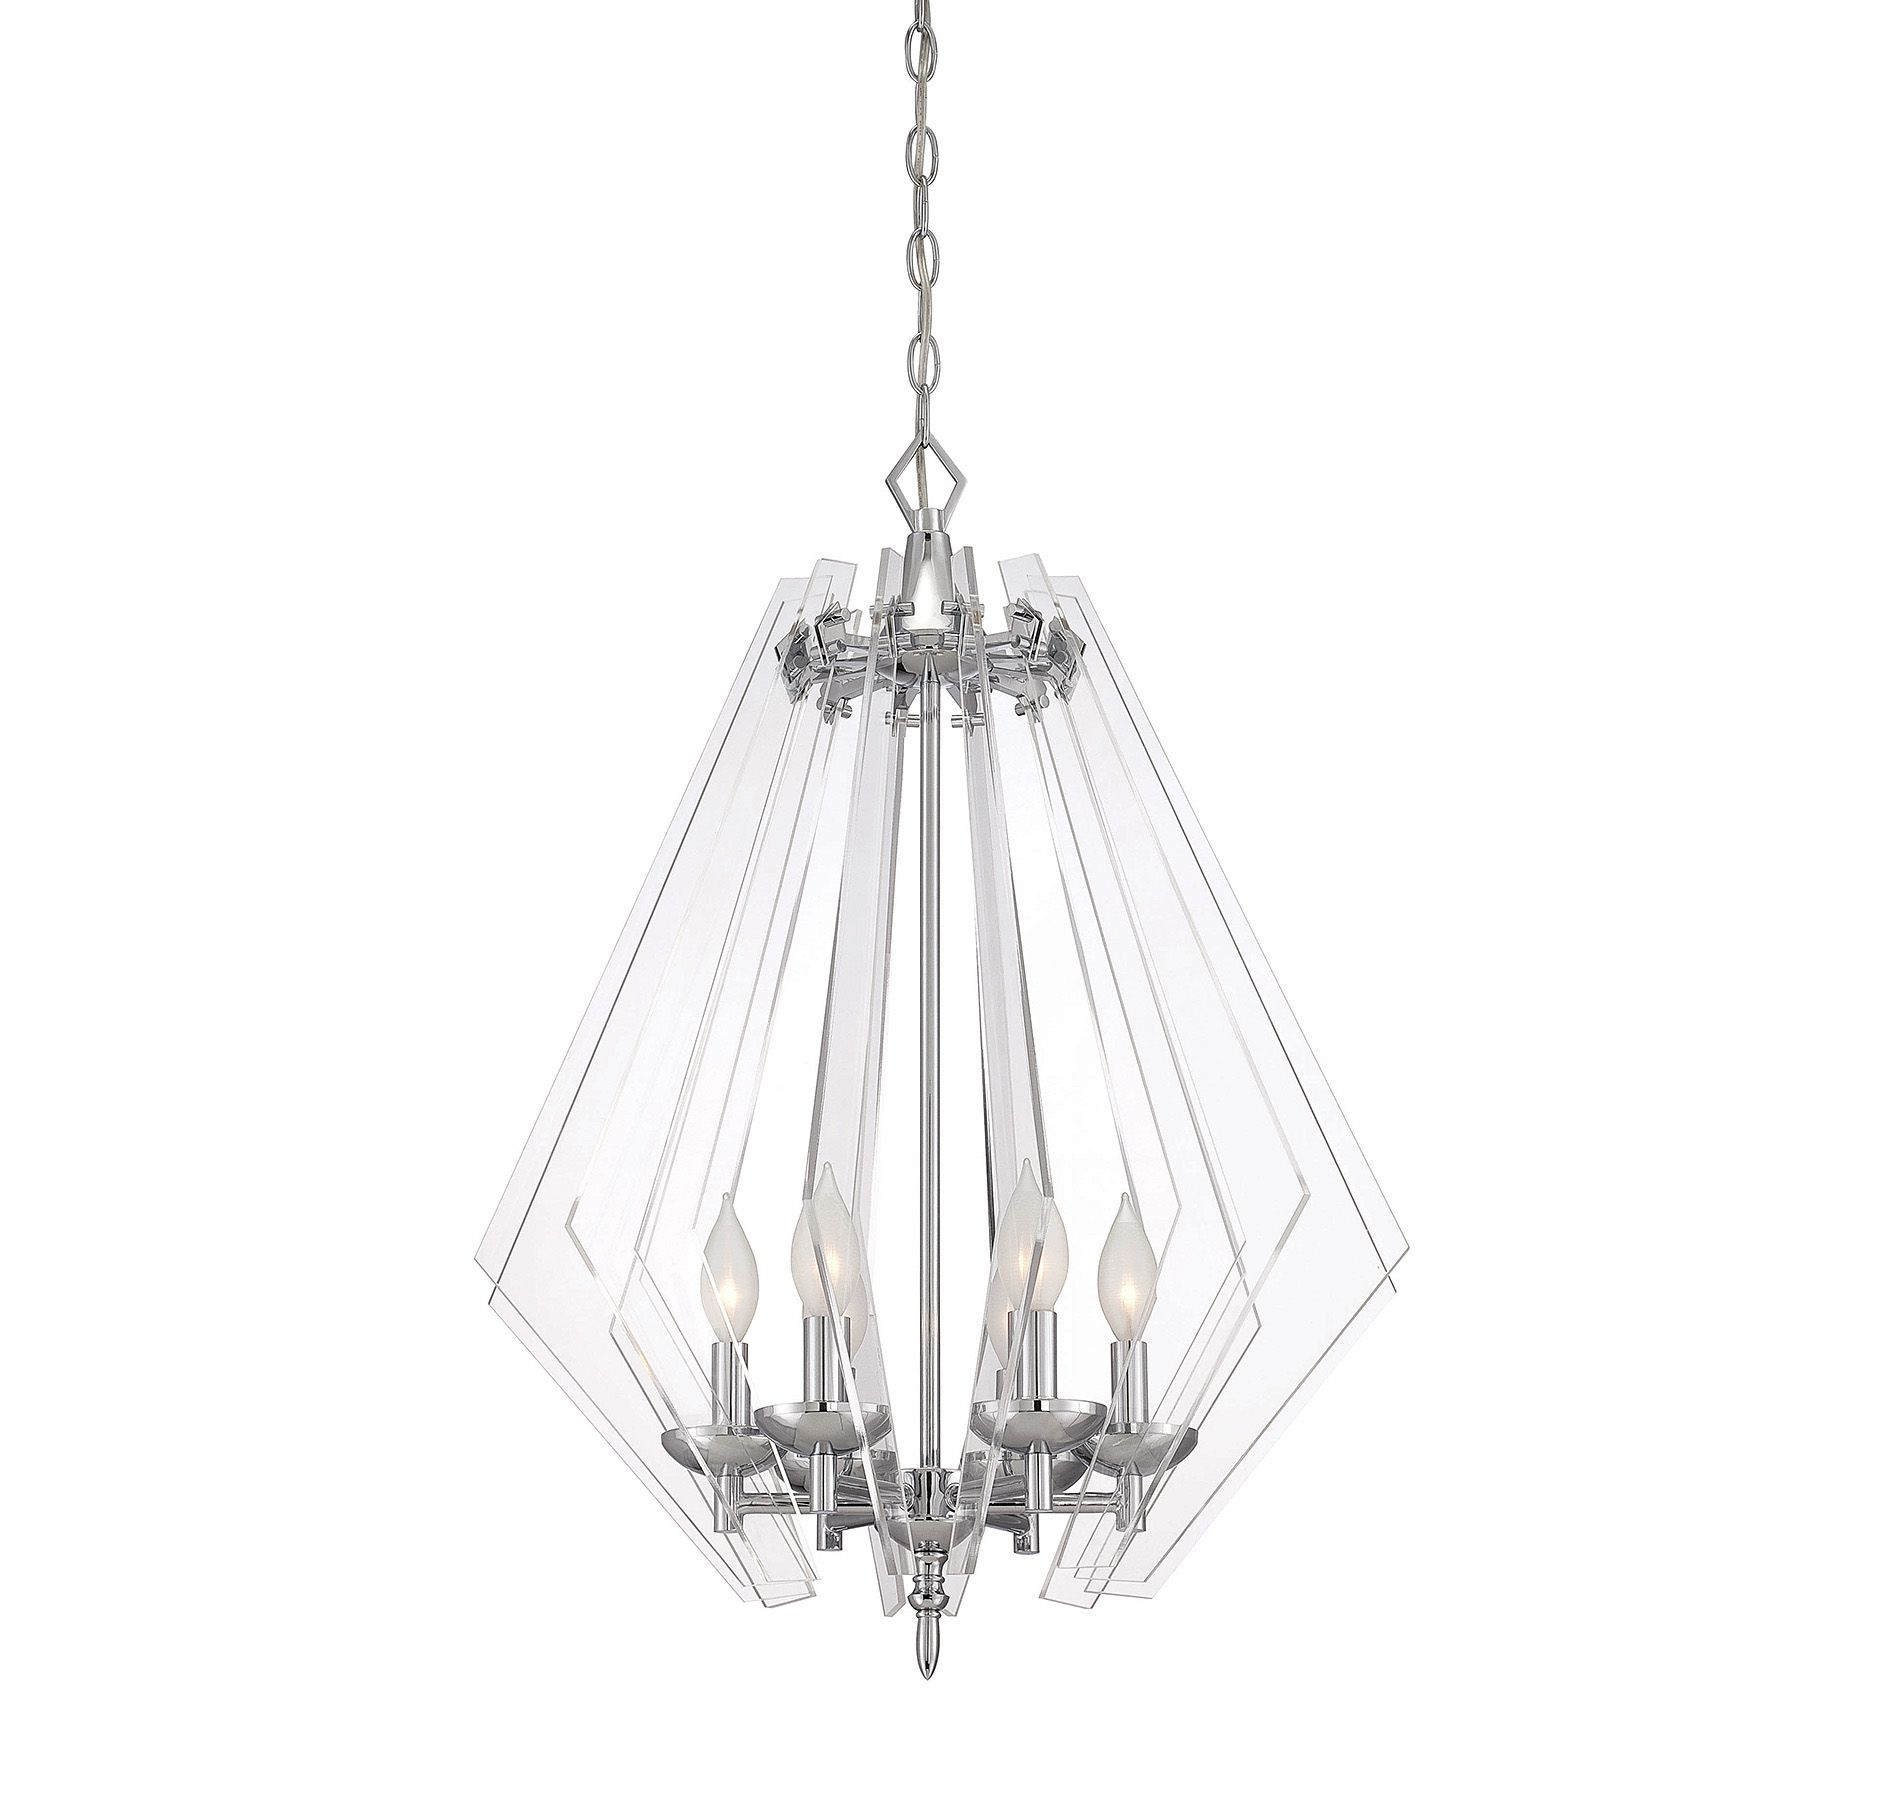 Trend 6 Clean And Contemporary We Also Saw And Liked A Lot Of Shapes In Lucite Savoy House S Newel Ceiling Pendant Lights Pendant Lighting Ceiling Lights